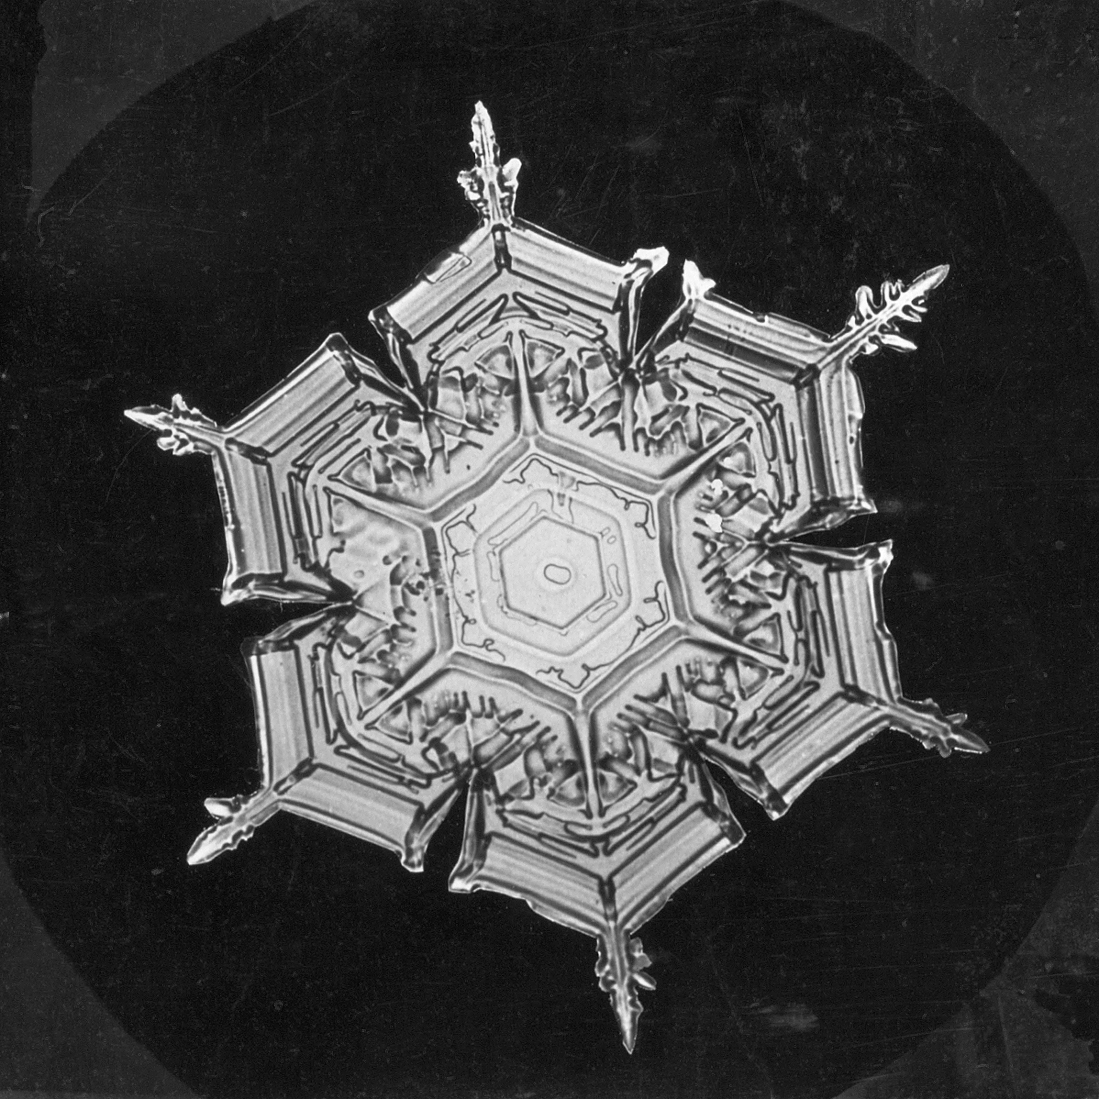 Snowflake Study, between 1890-1903, by Wilson A. Bentley, Smithsonian Institution Archives, Image ID# RU 31 Box 12 Folder 17 (32-e).